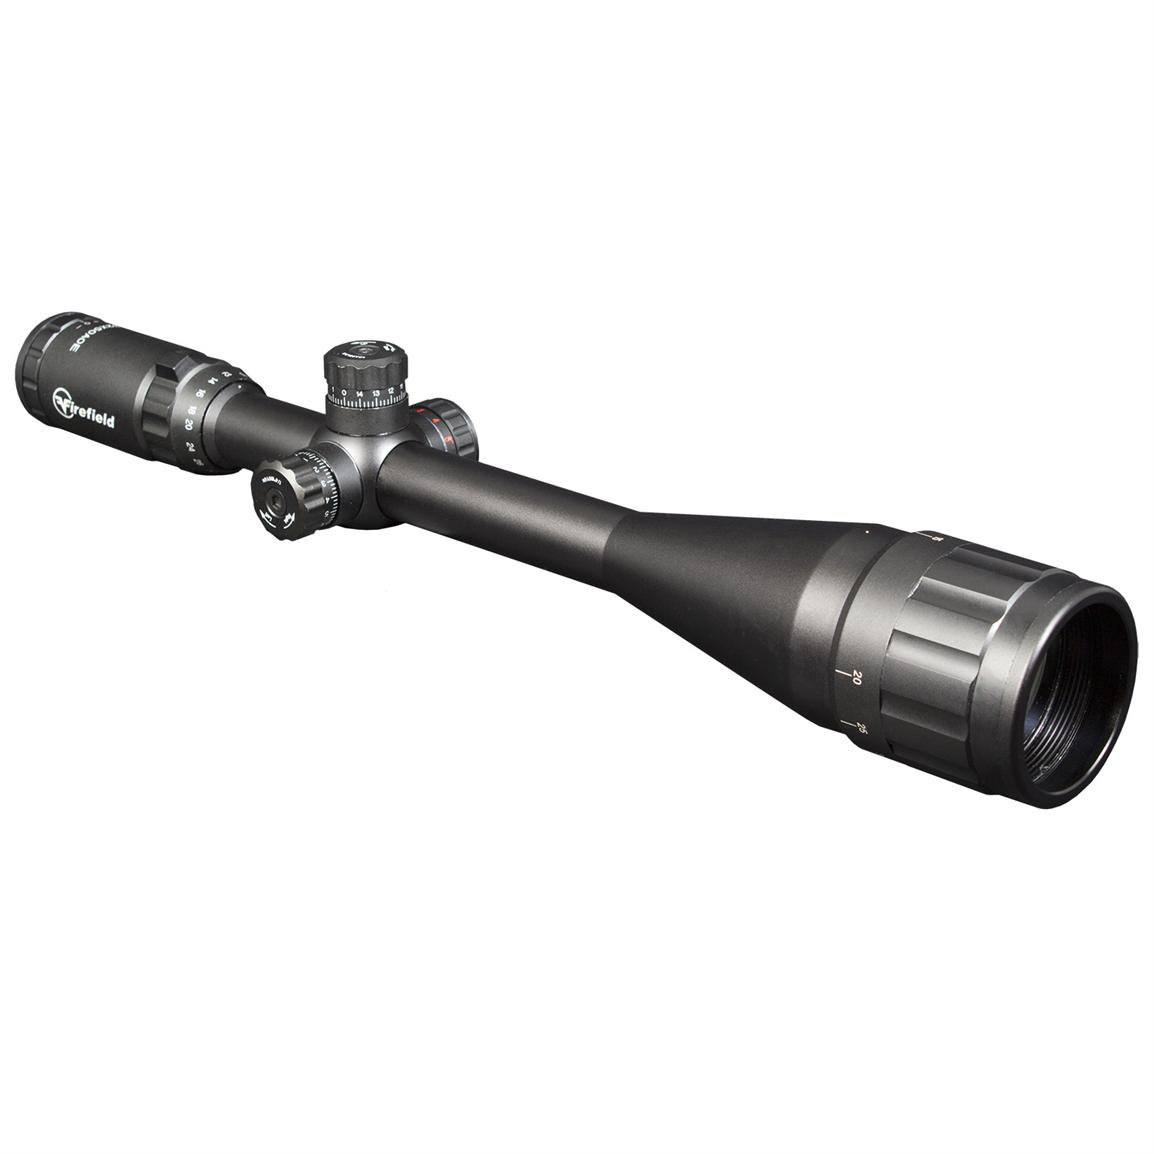 Firefield® FF13045 Tactical 8-32x50mm AO Illuminated Mil-dot Reticle Rifle Scope